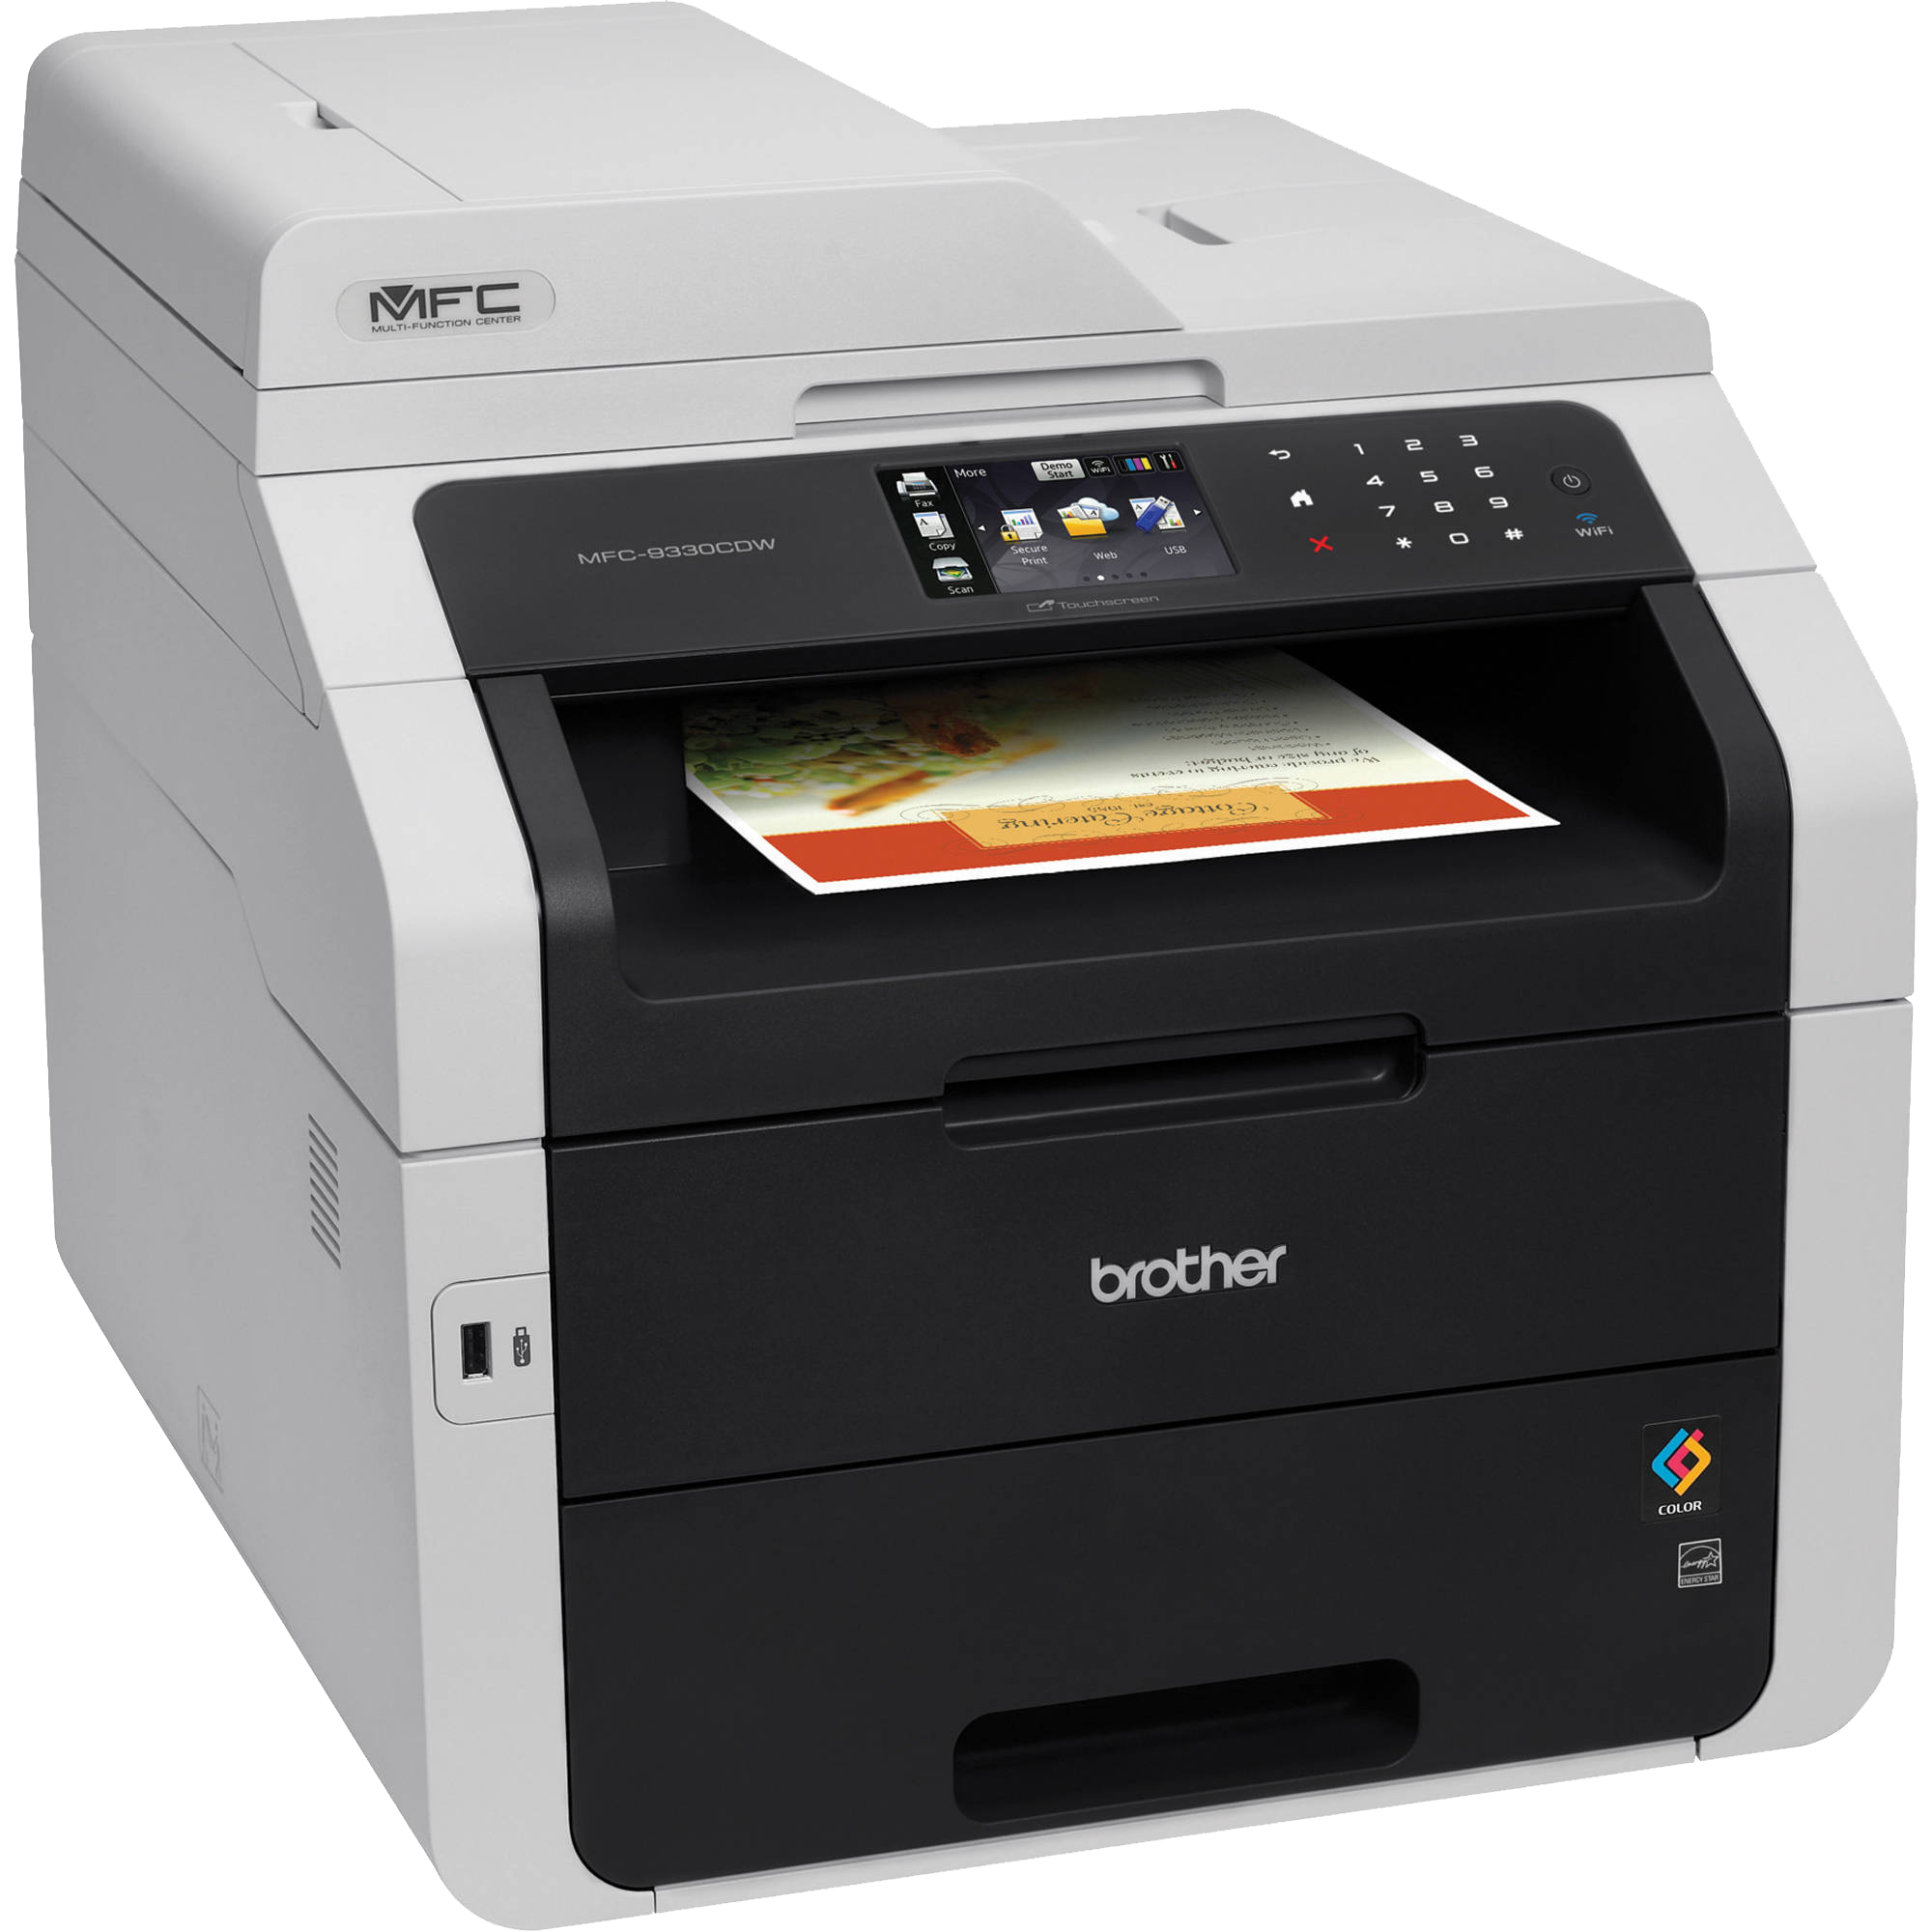 How To Fix Brother Printer Error Printing Multifunction Printer Brother Mfc Brother Printers